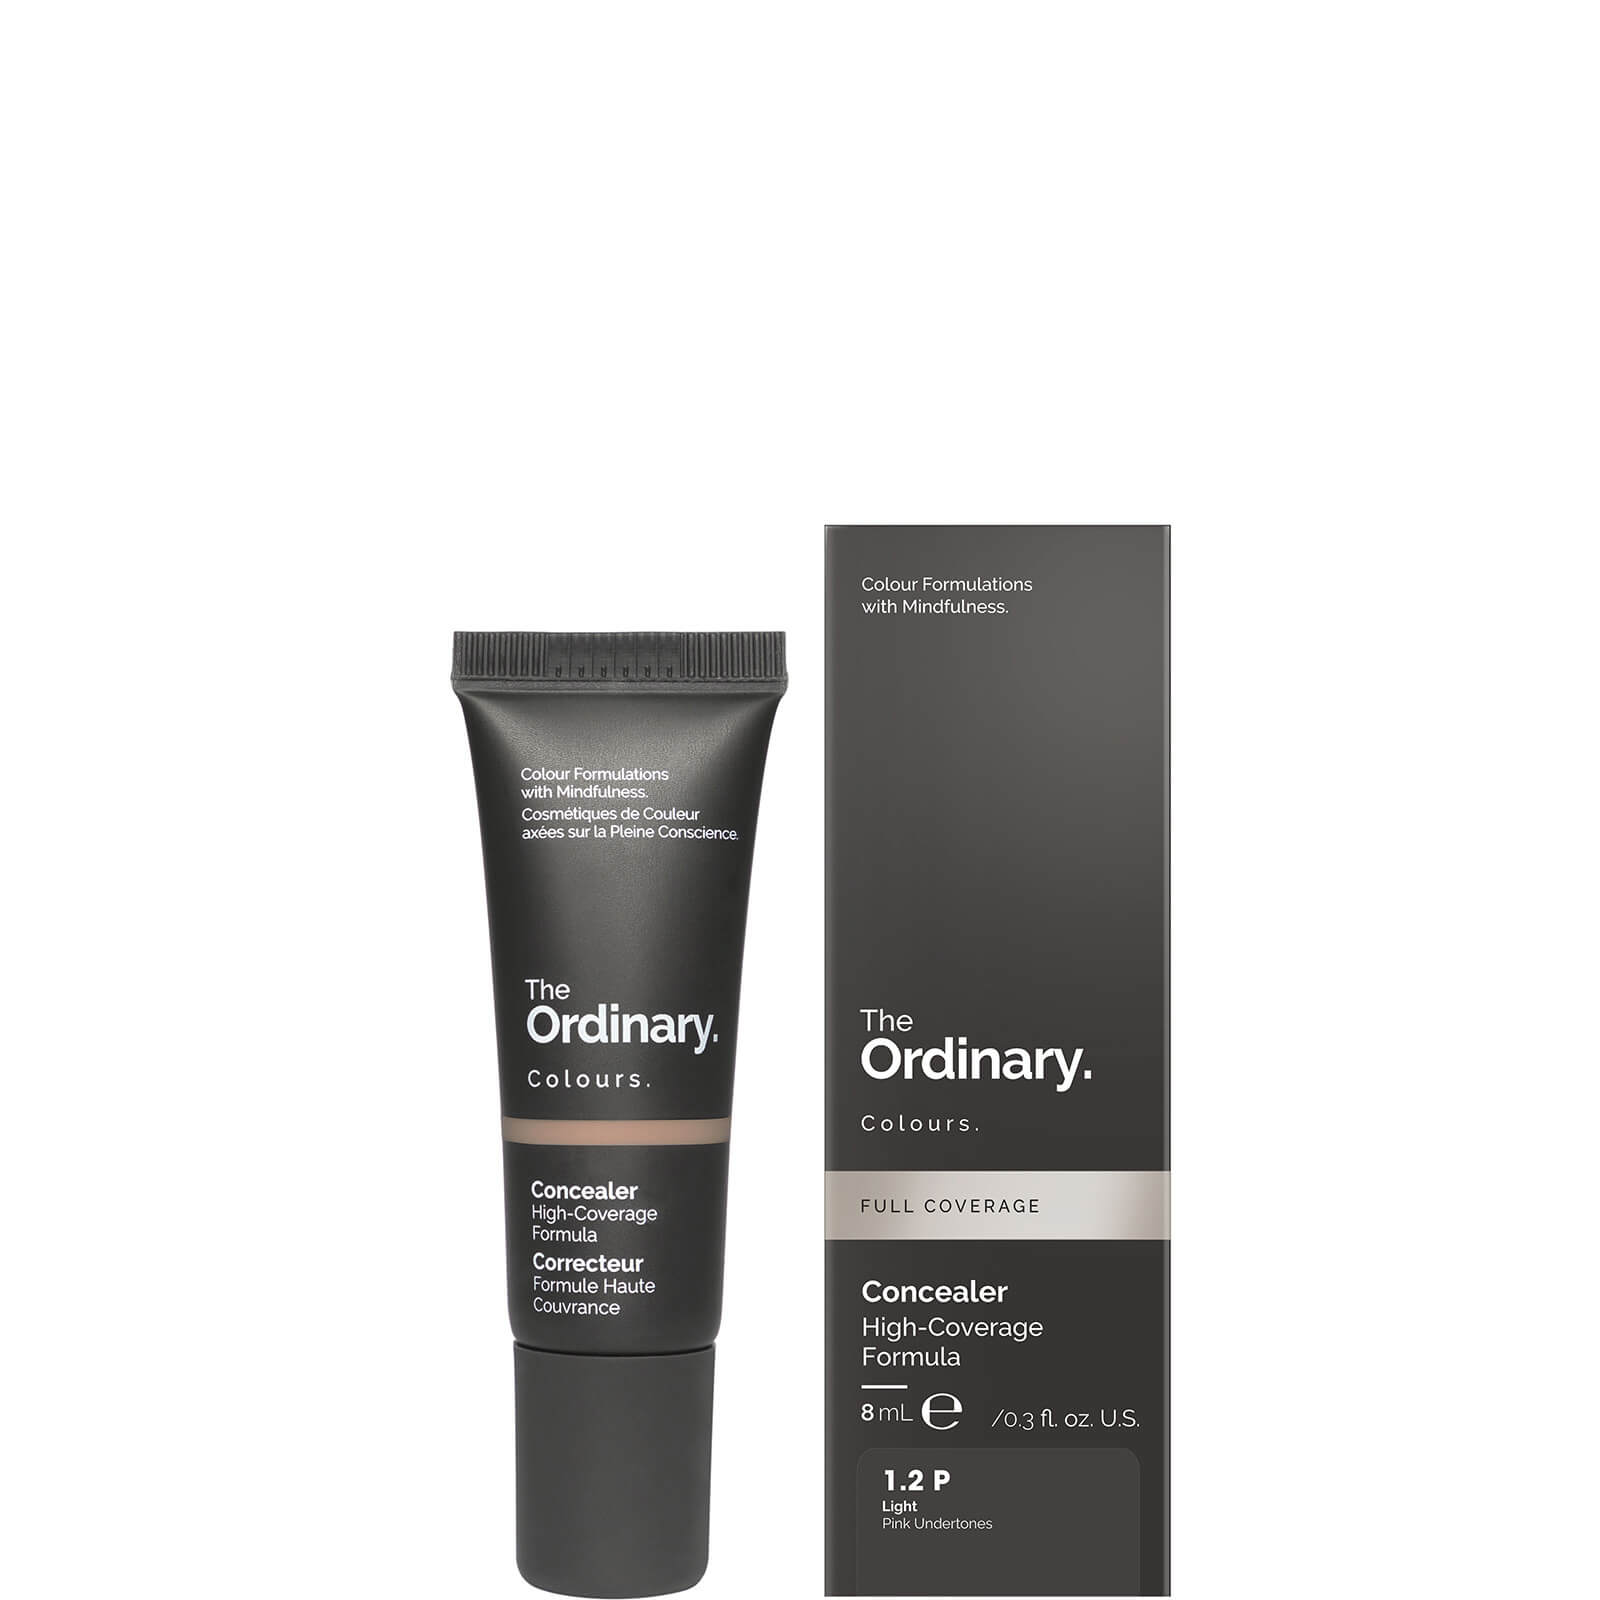 The Ordinary Concealer 8ml (Various Shades) - 1.2 P